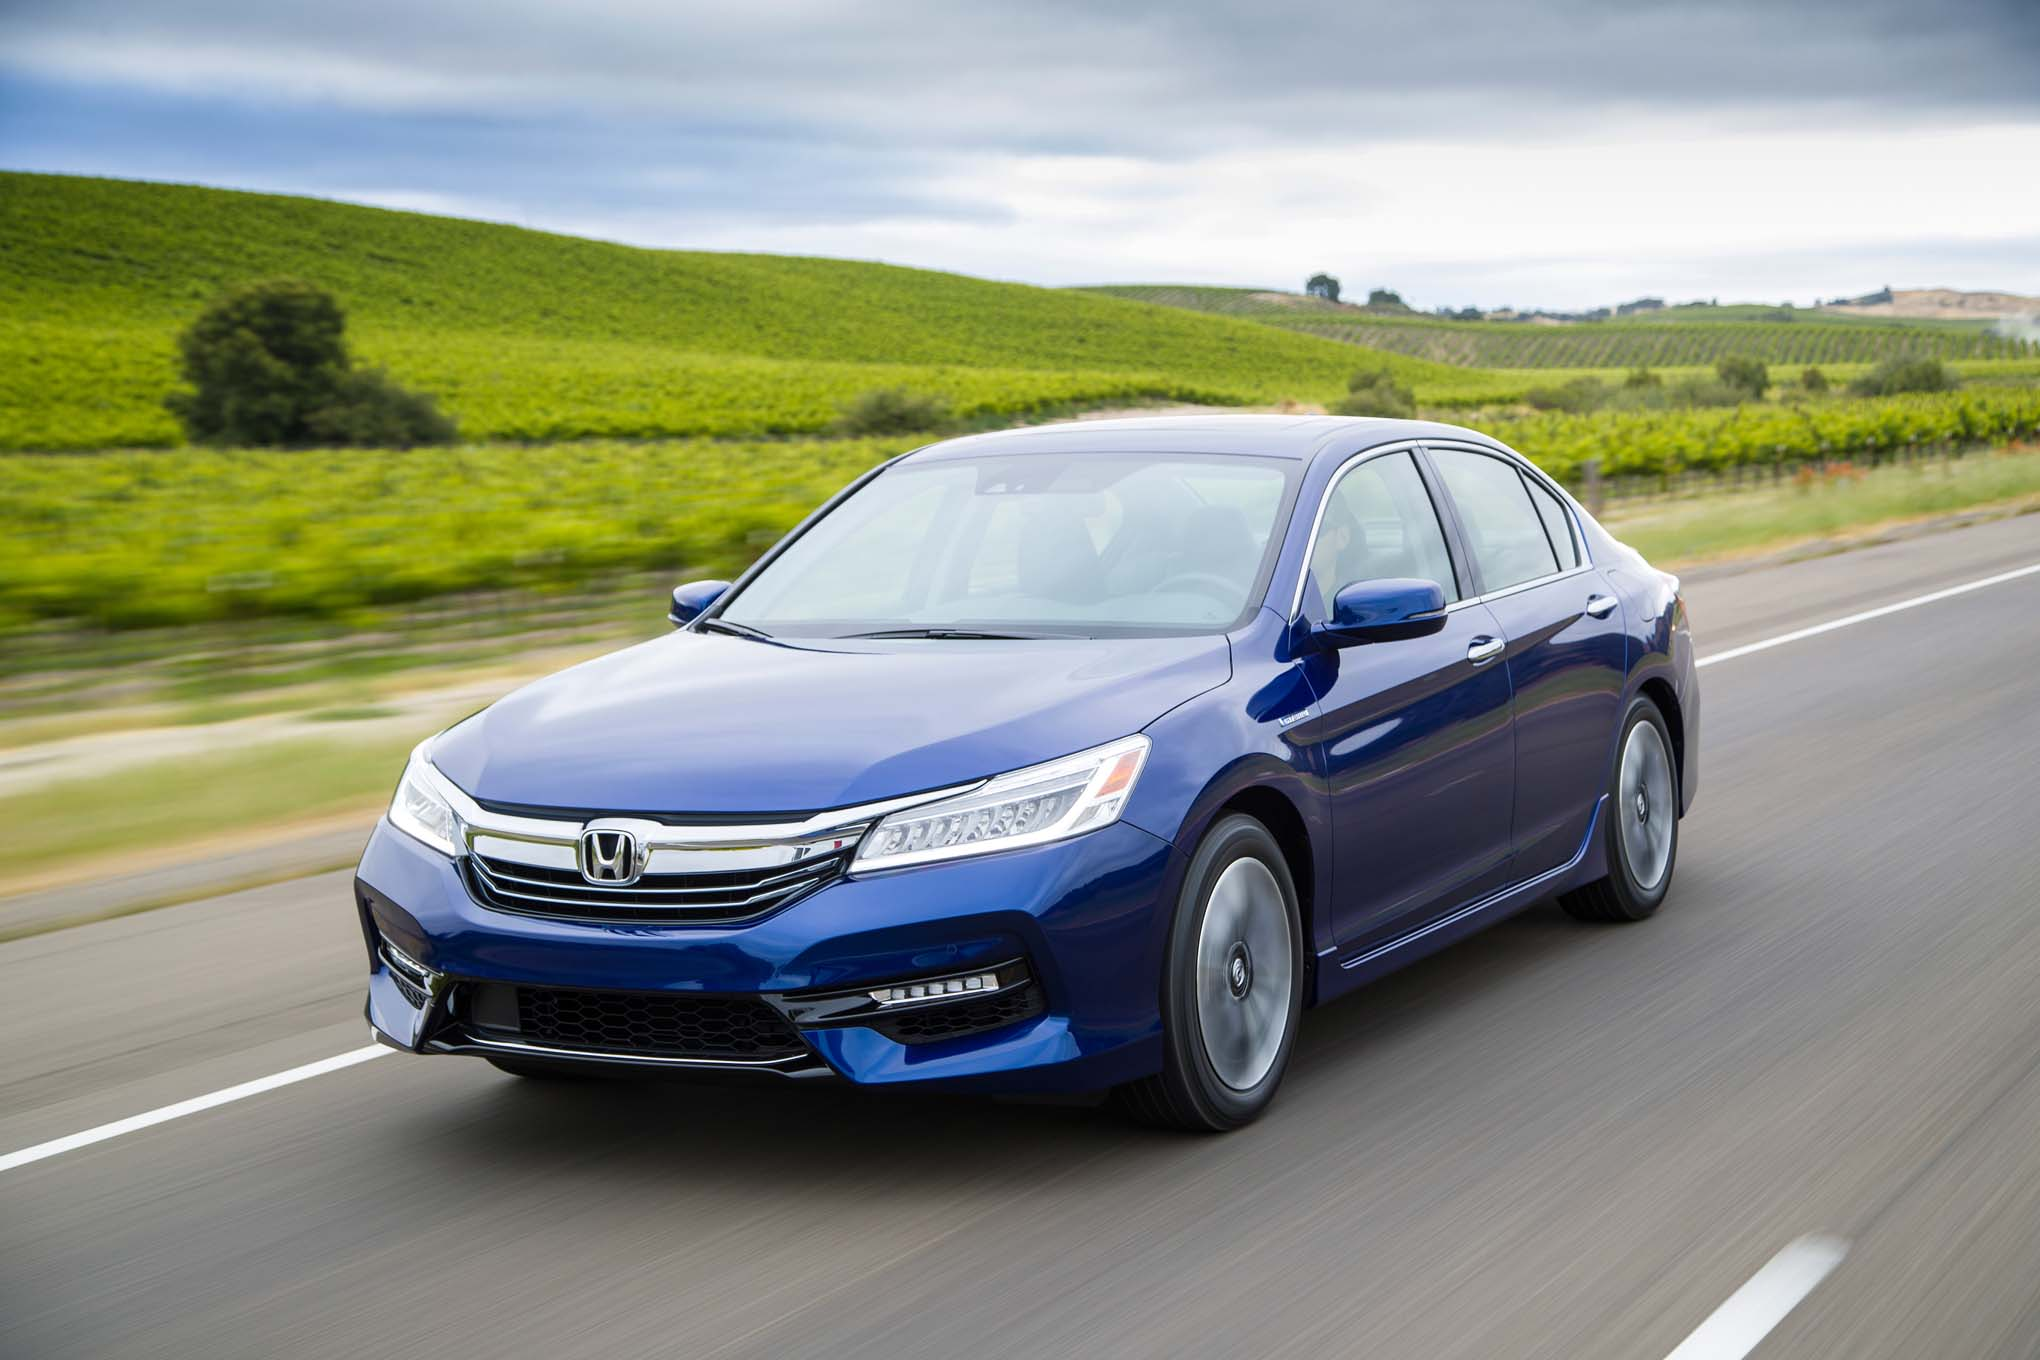 2017 Honda Accord Hybrid Gets More Power, Improved ...